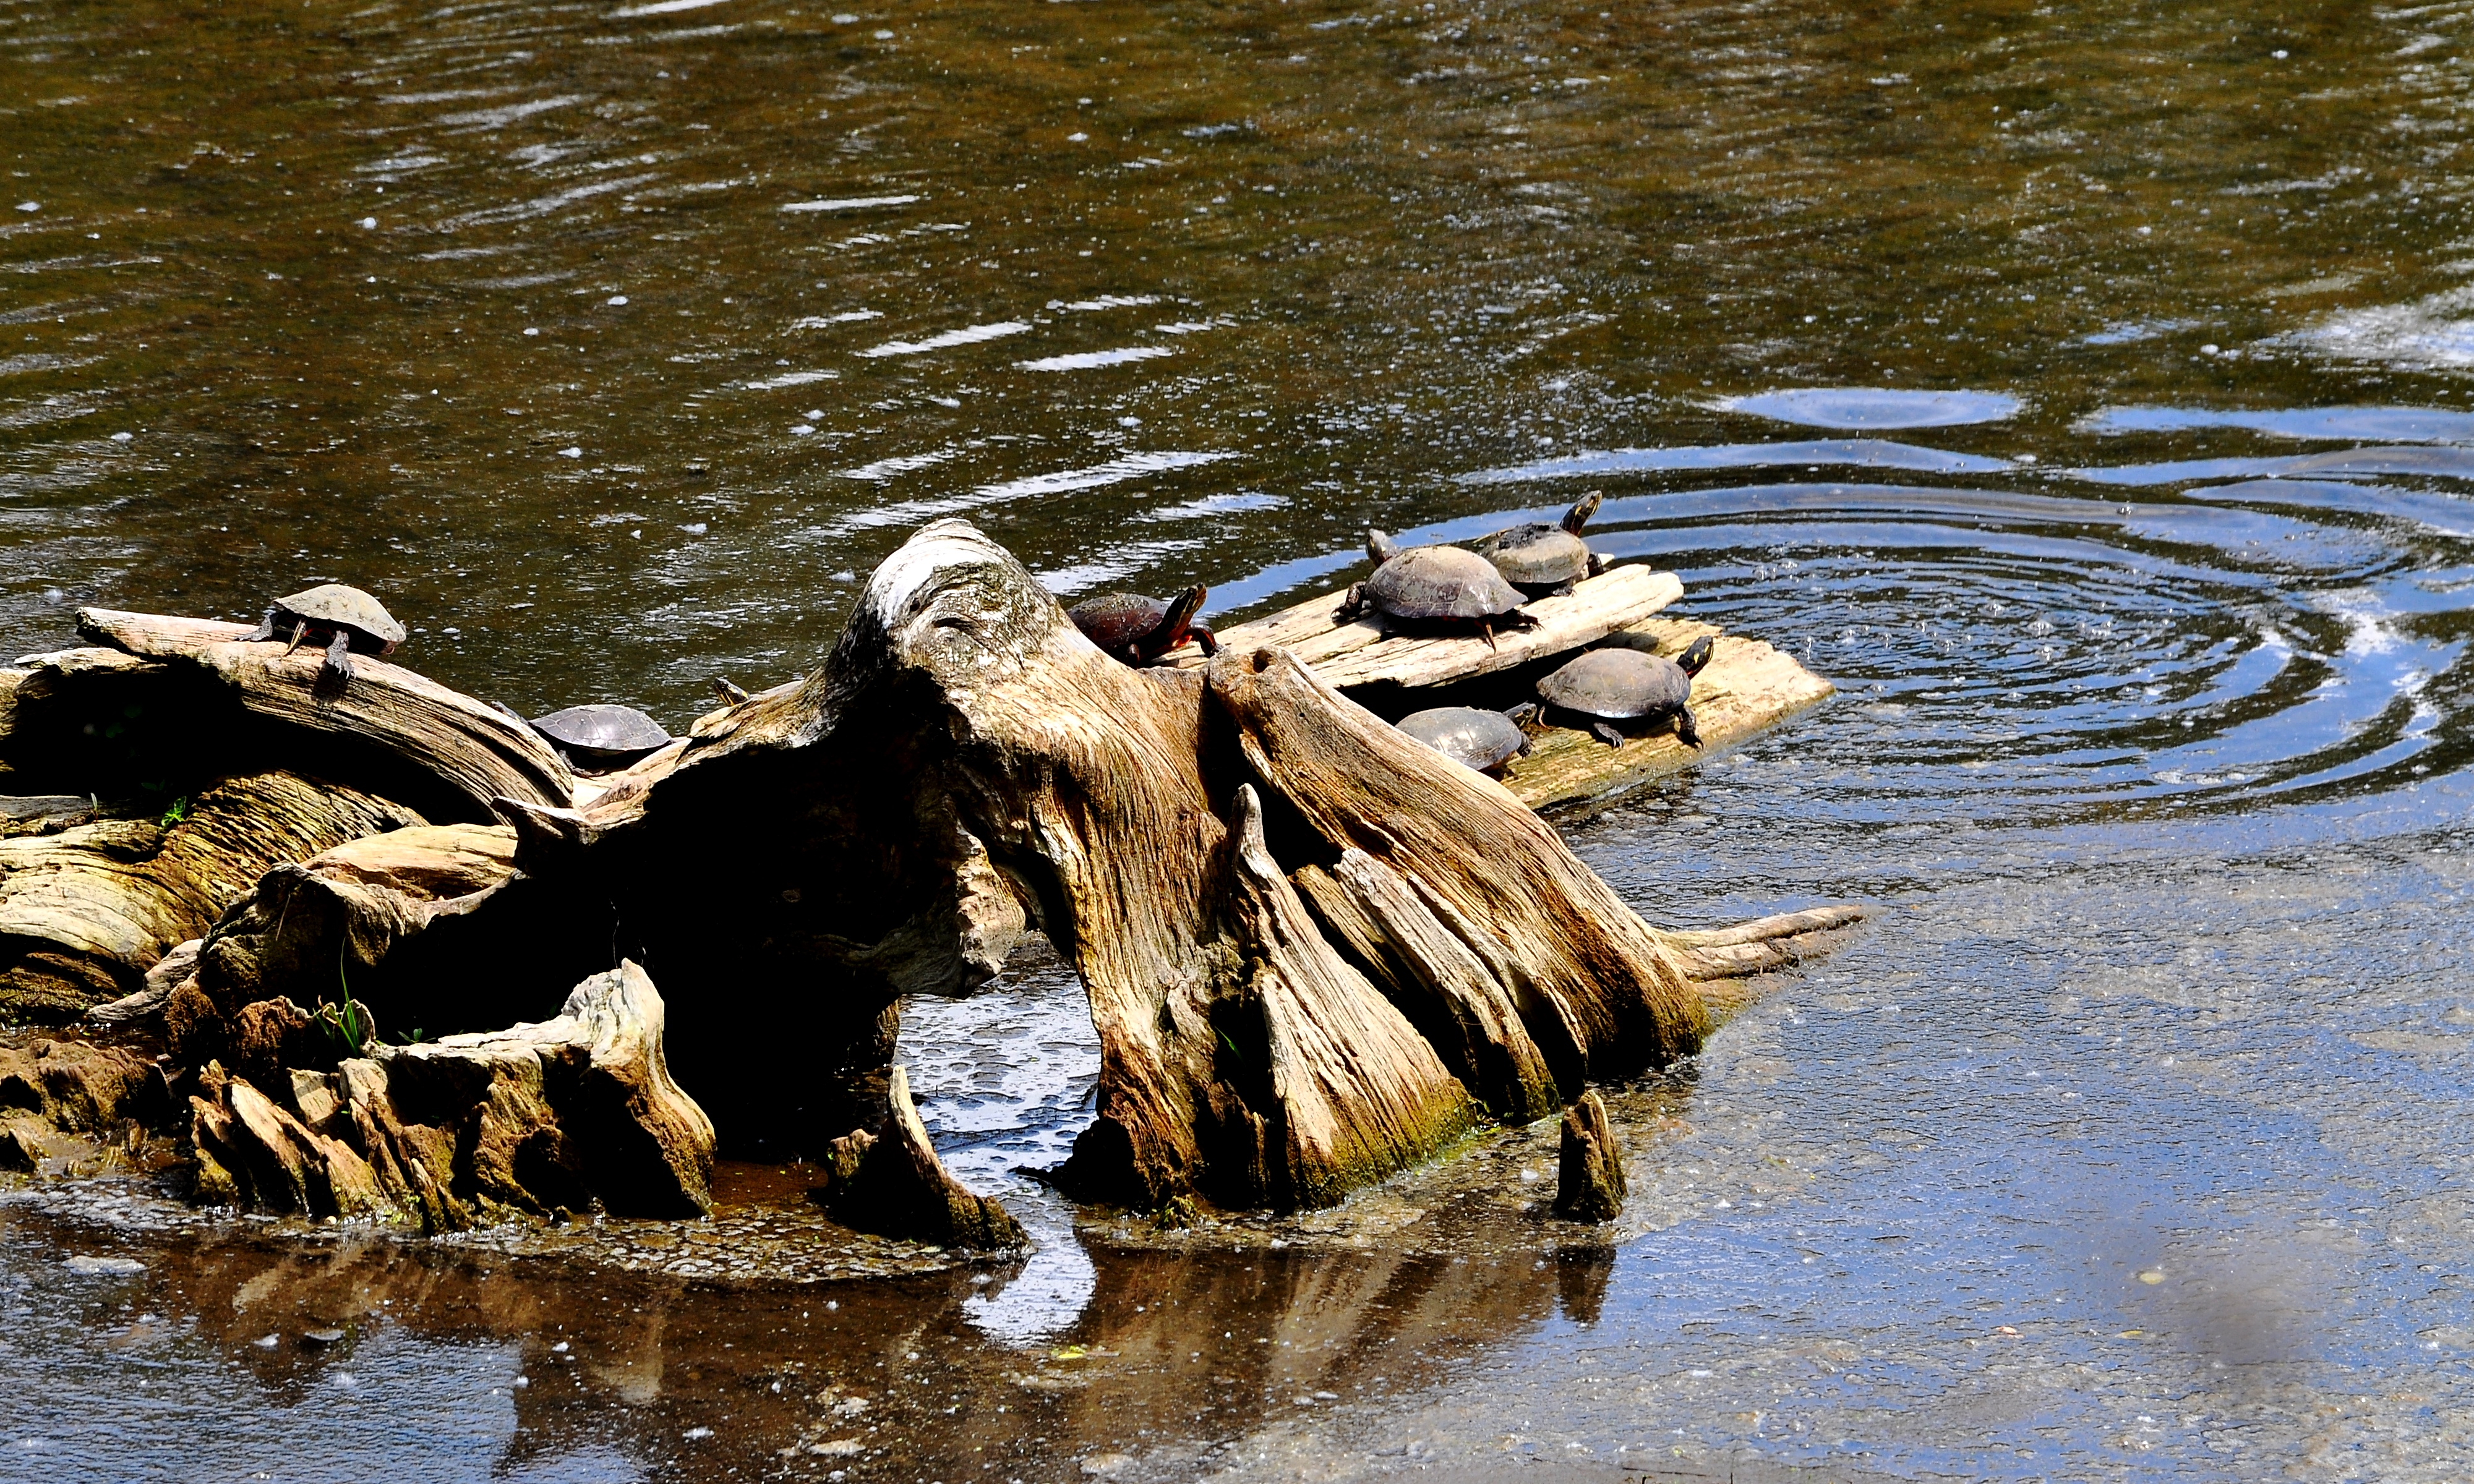 Painted Turtles; one just slipped back into the water, perhaps to feed ...